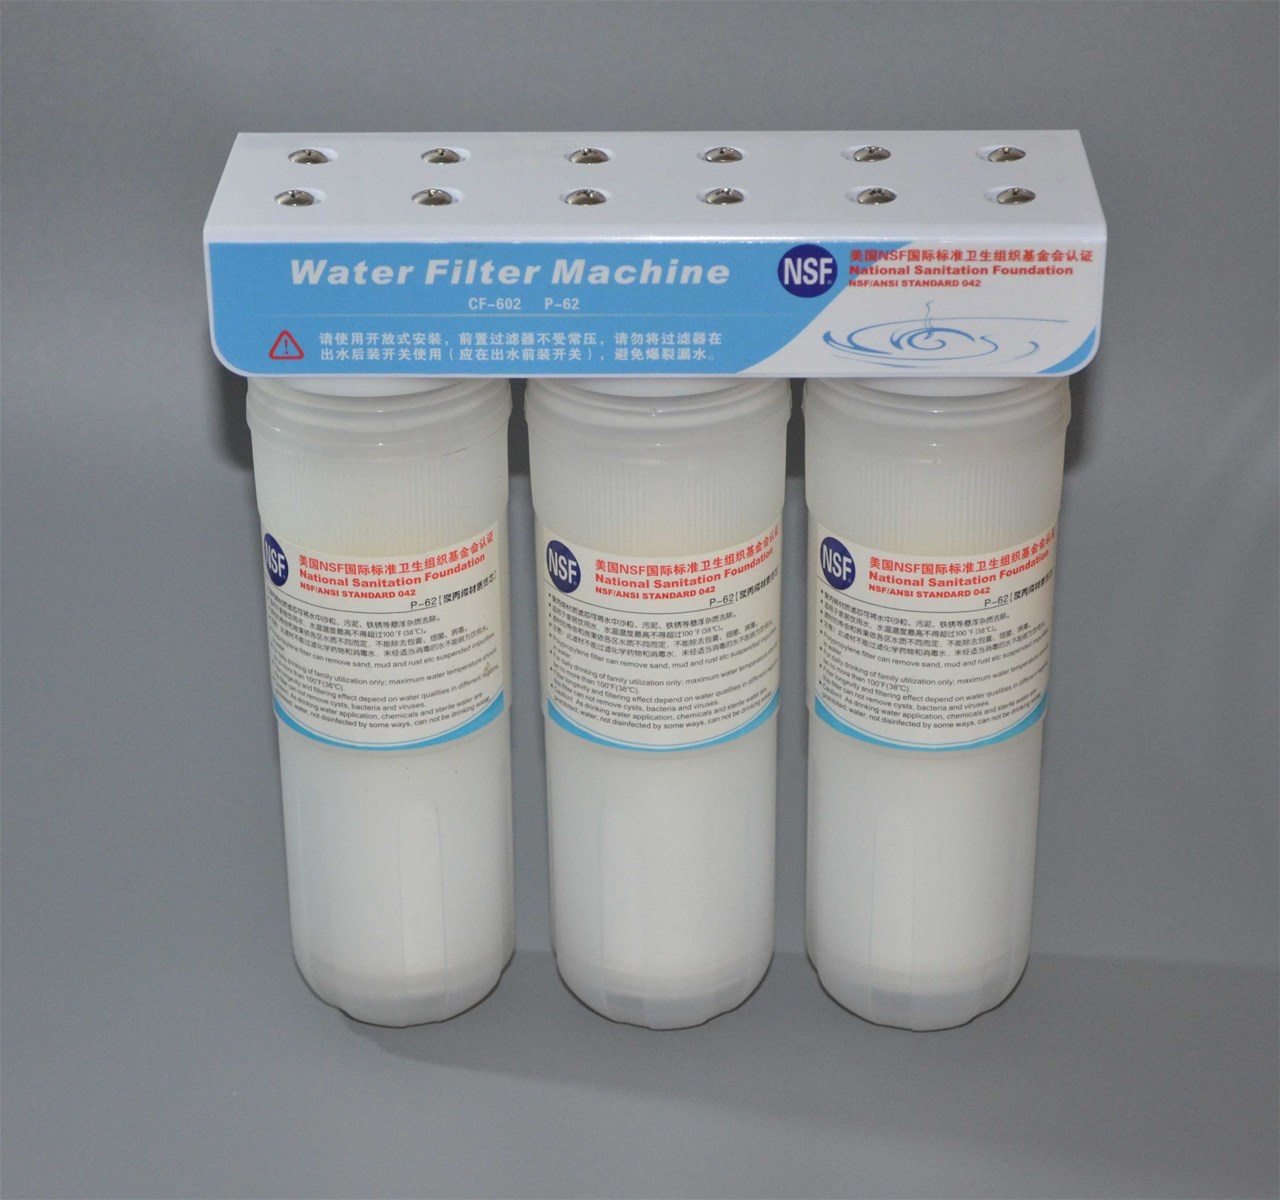 3 Stage Pre Filter System with NSF Standard to Protect Your Water Ionizer & Guarrantee Your Drinking Water